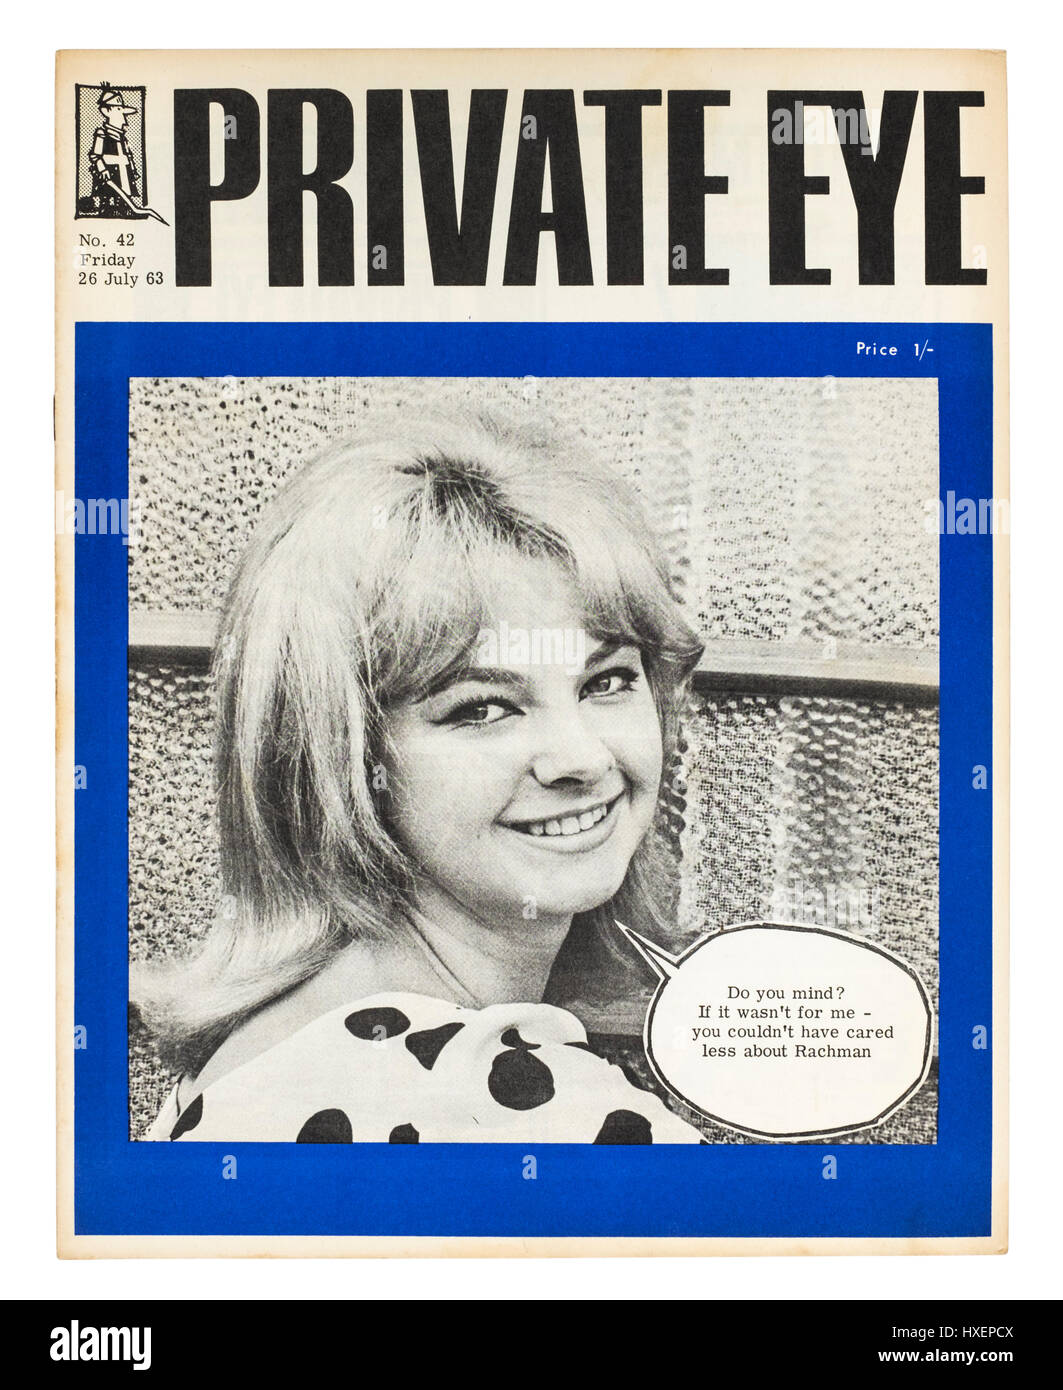 Issue No 42 of Private Eye magazine (Friday 26 July 1963) with Mandy Rice-Davies on the cover. She was an important - Stock Image